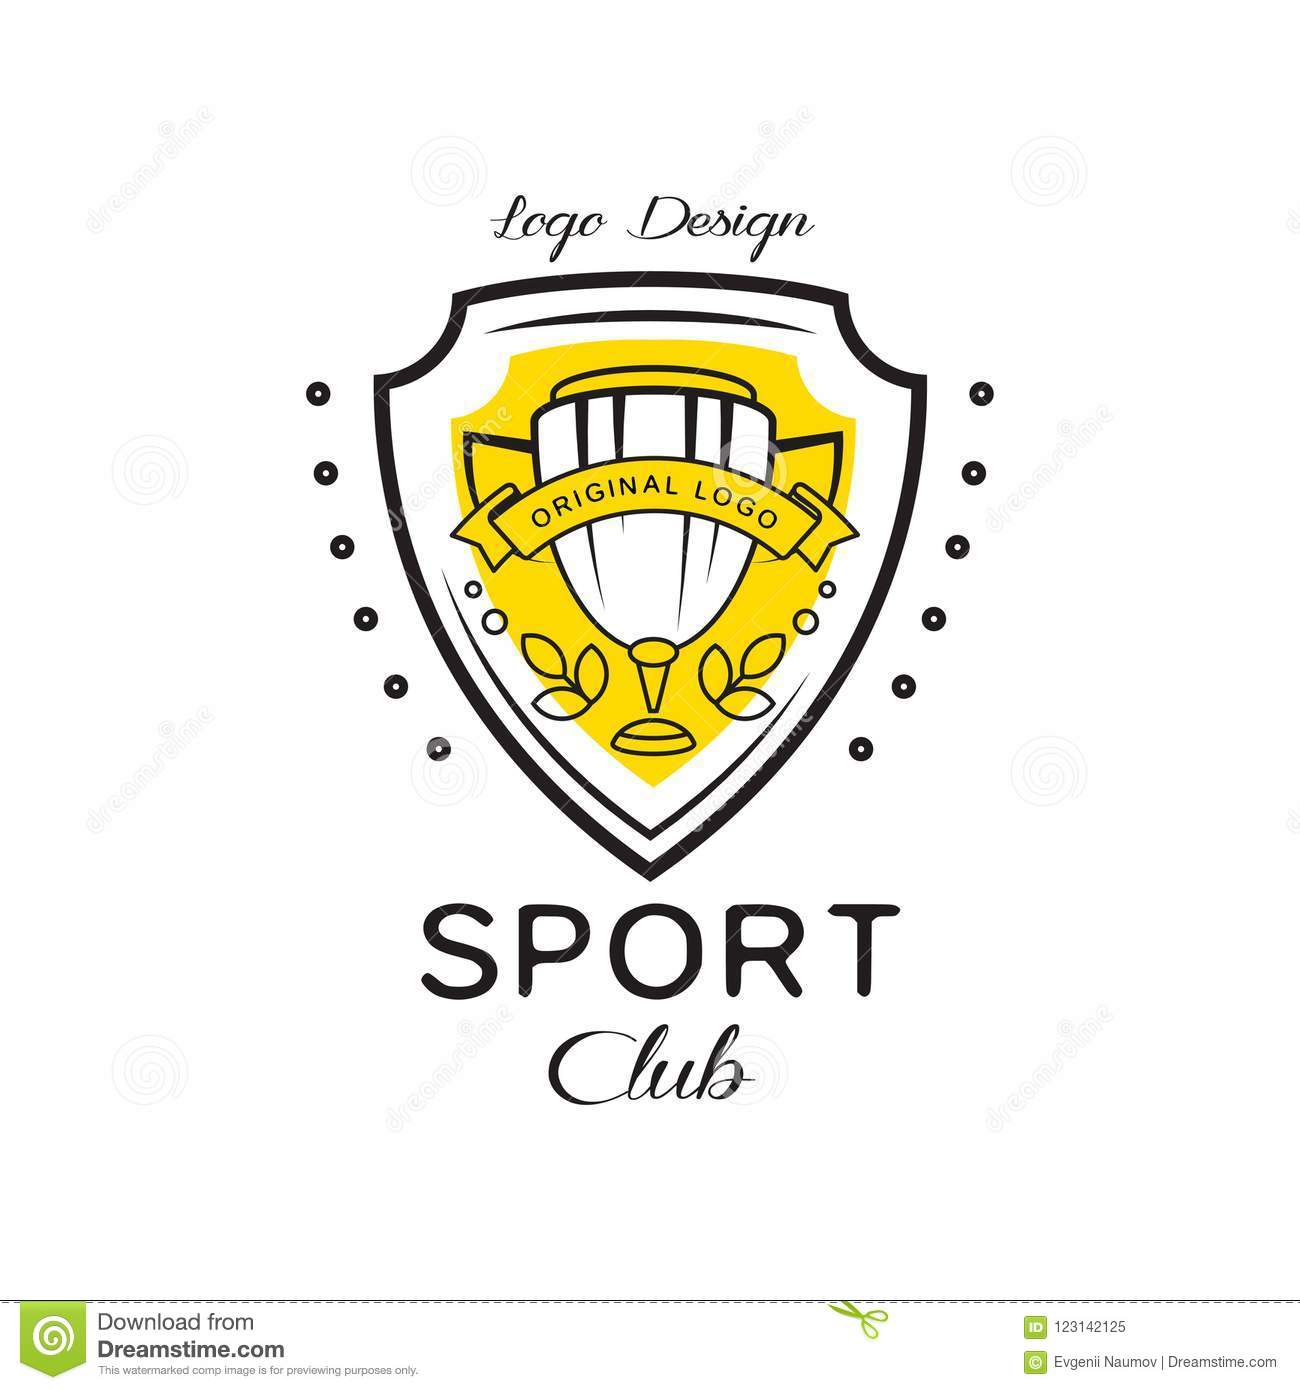 Sport Club Logo Design Heraldic Shield With Winner Cup Badge Can Be Used For Fitness Club Sport School Vector Stock Vector Illustration Of Creative League 123142125